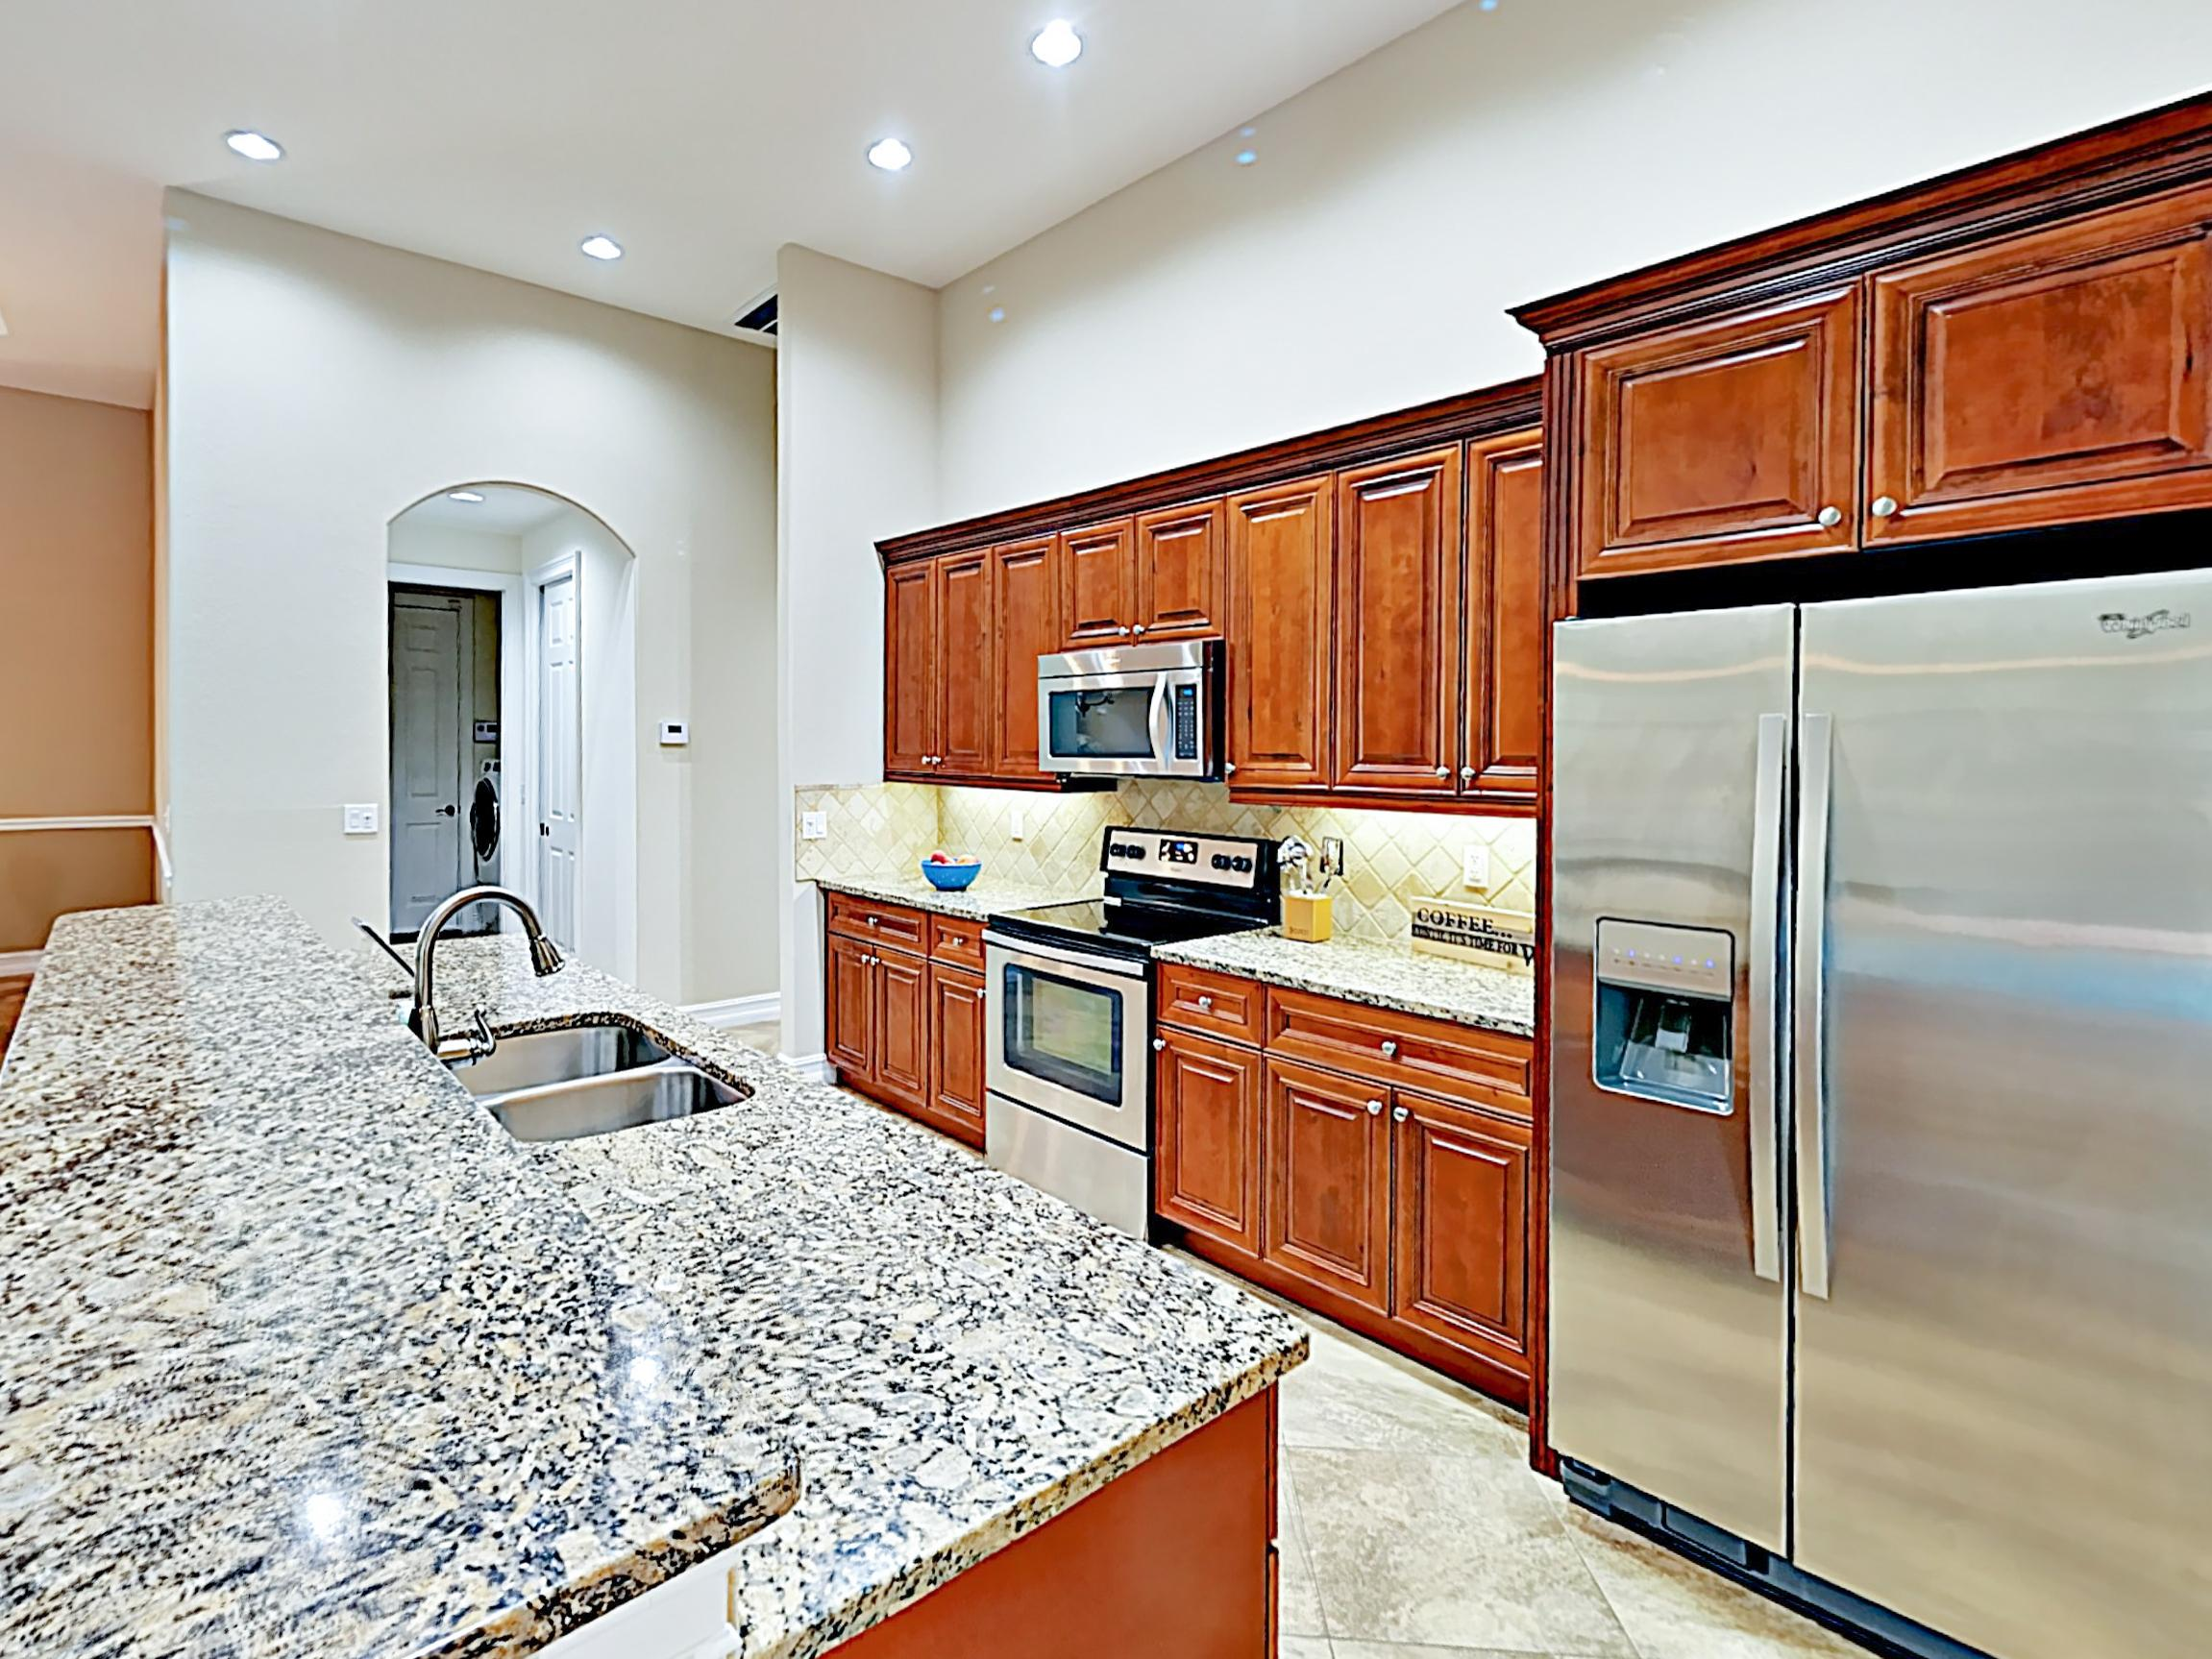 The chef in your group will appreciate the modern kitchen, equipped with a full suite of stainless steel appliances.